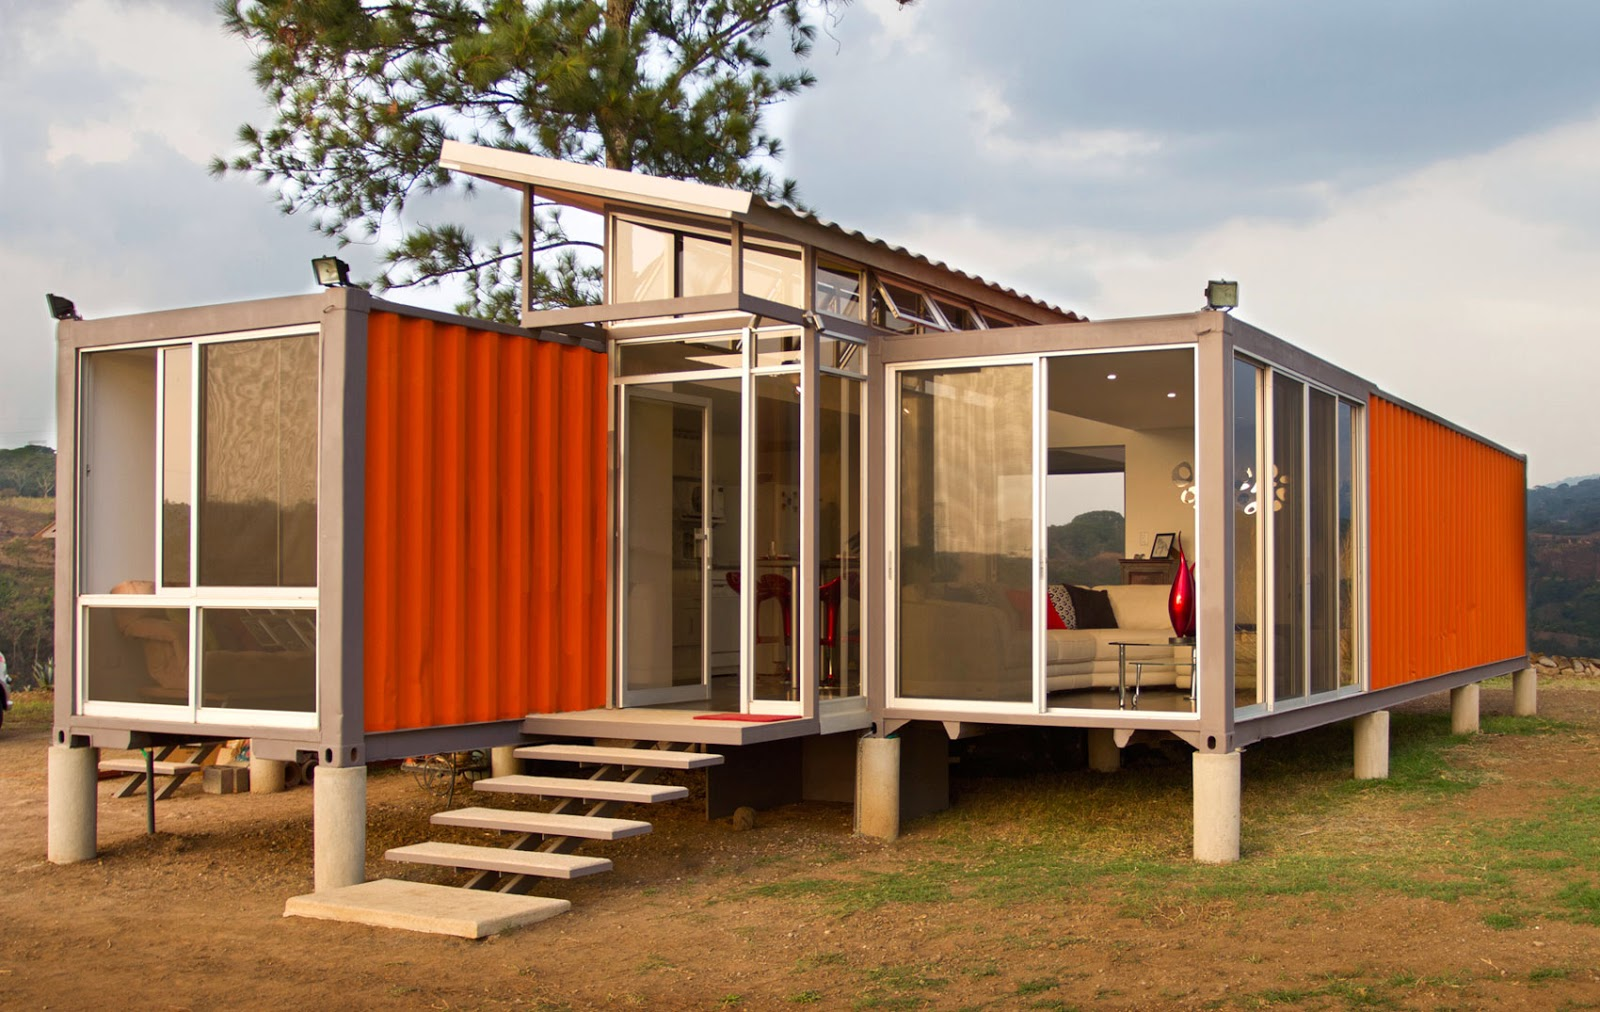 5 shipping container homes that inspire your inner architect - Cargo container homes ...